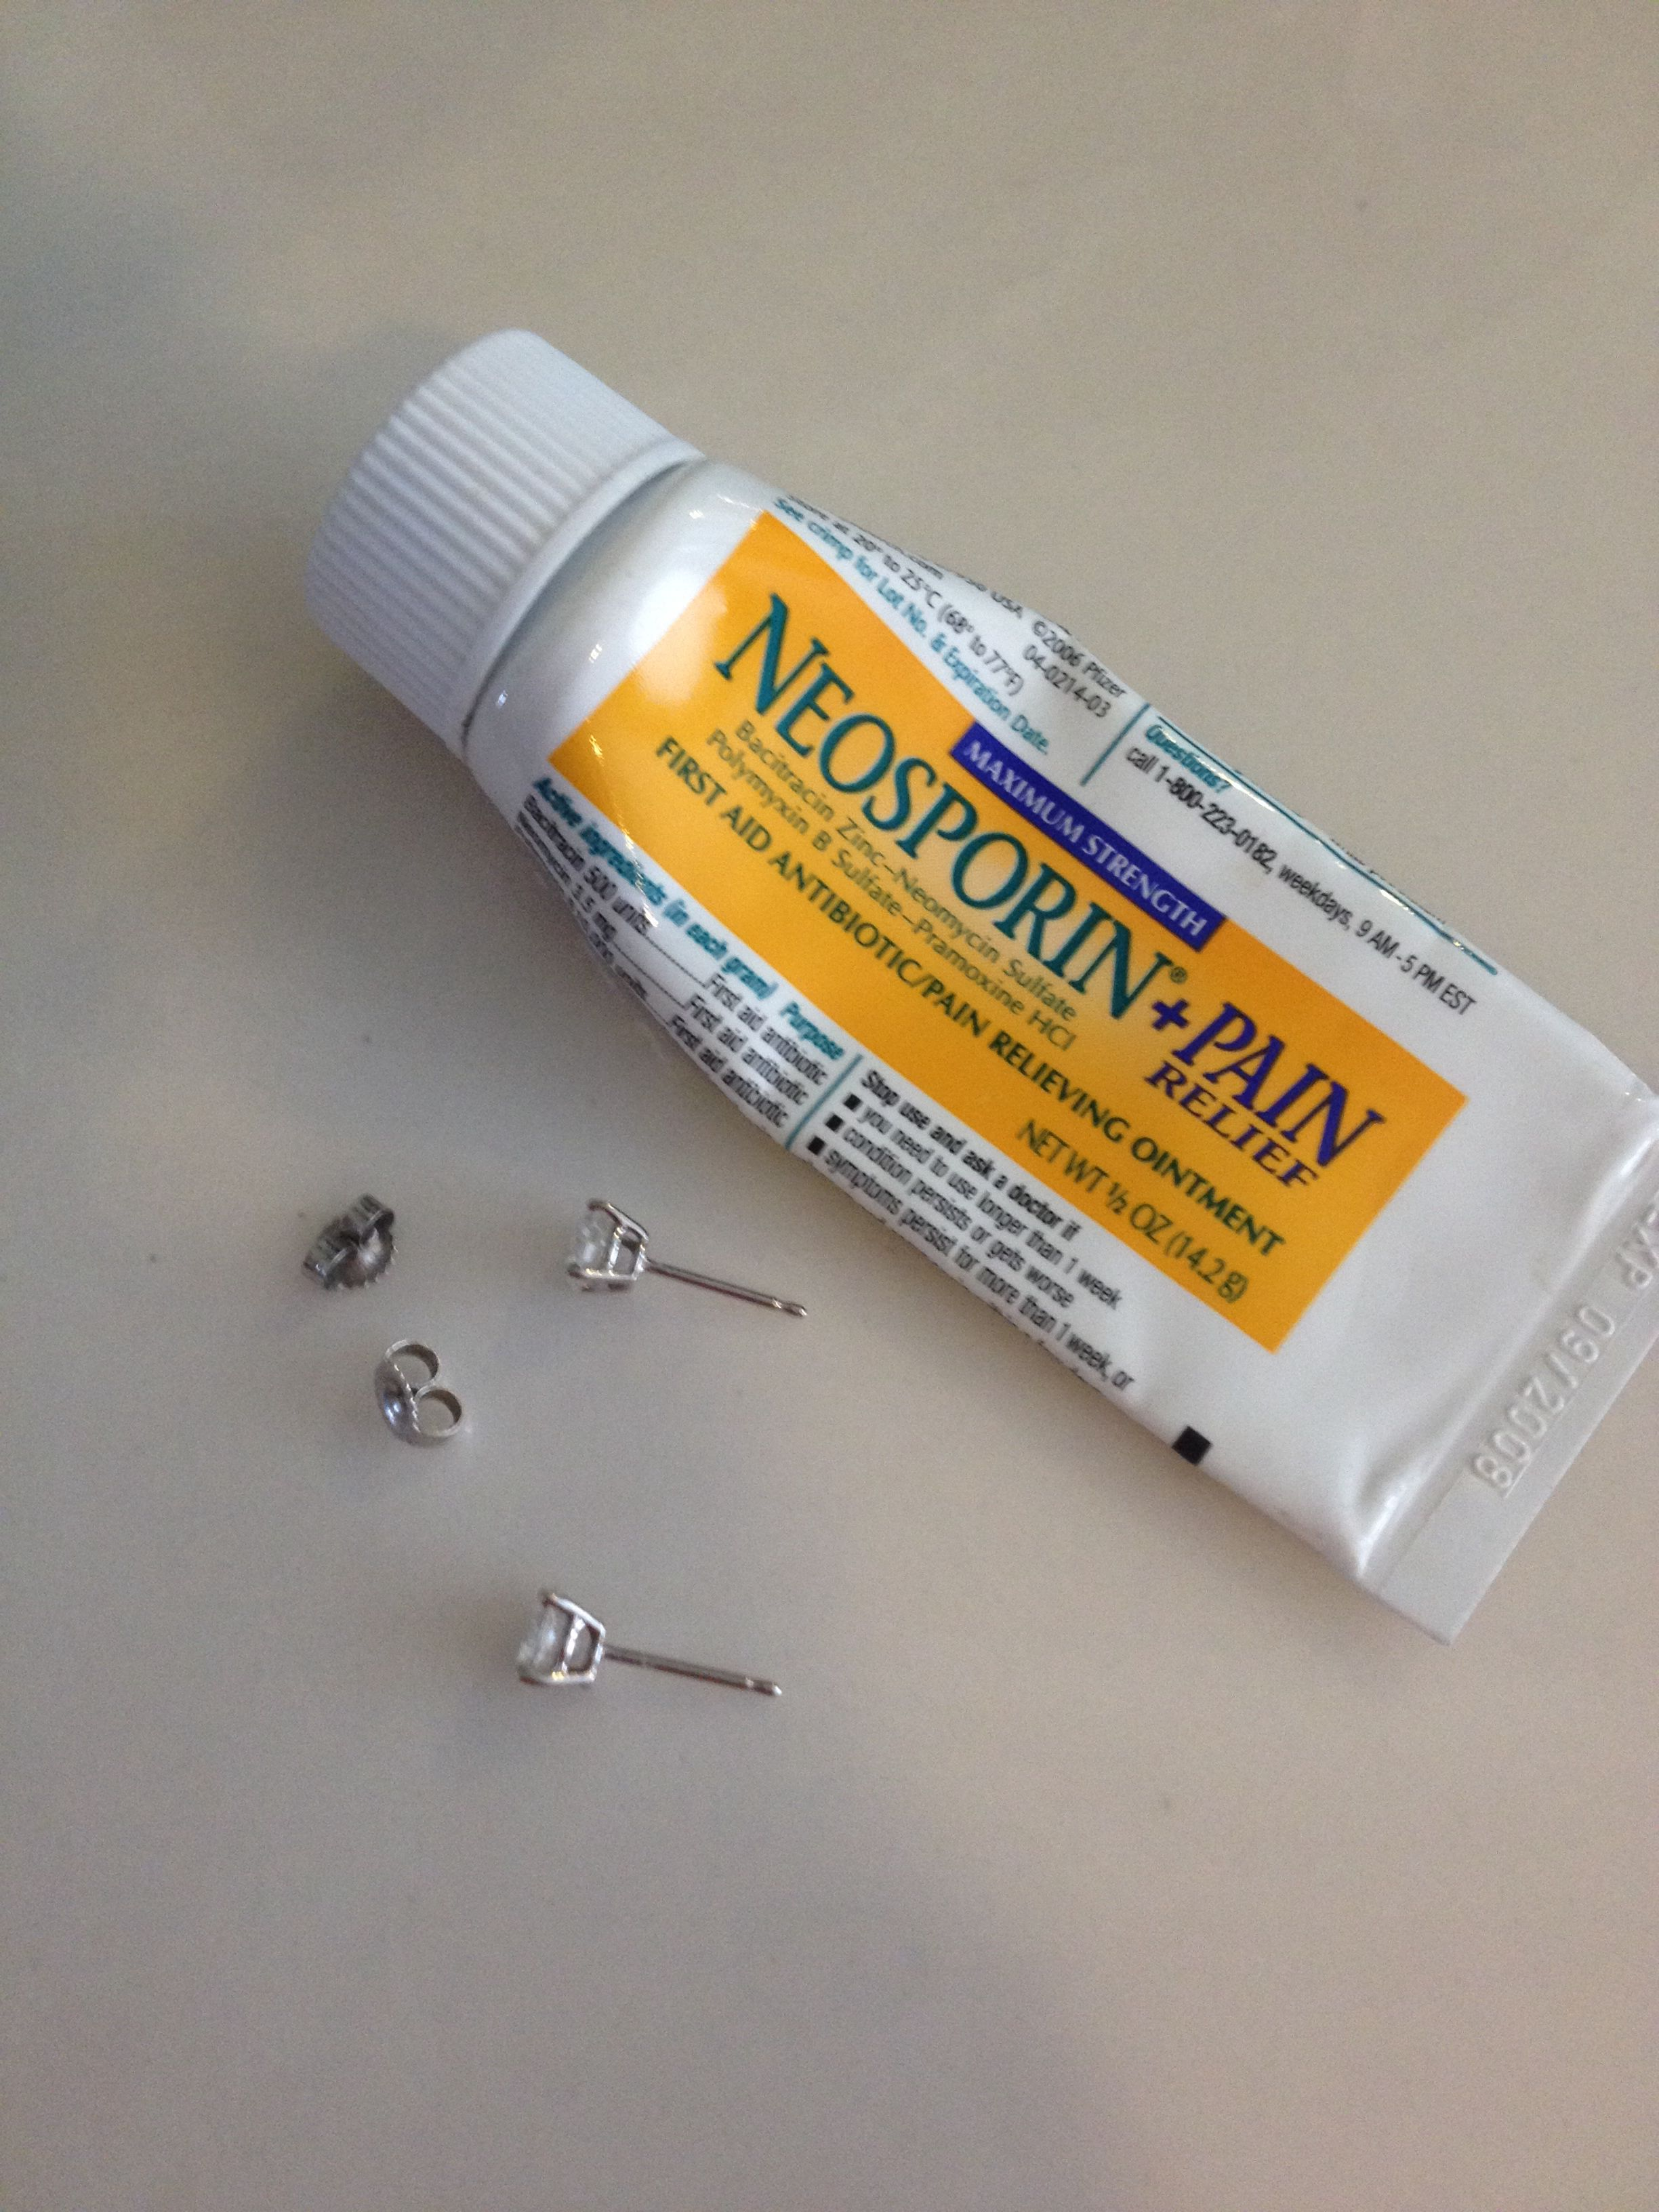 Insert Tip Of Earring Into Neosporin Before Putting In Your Ear